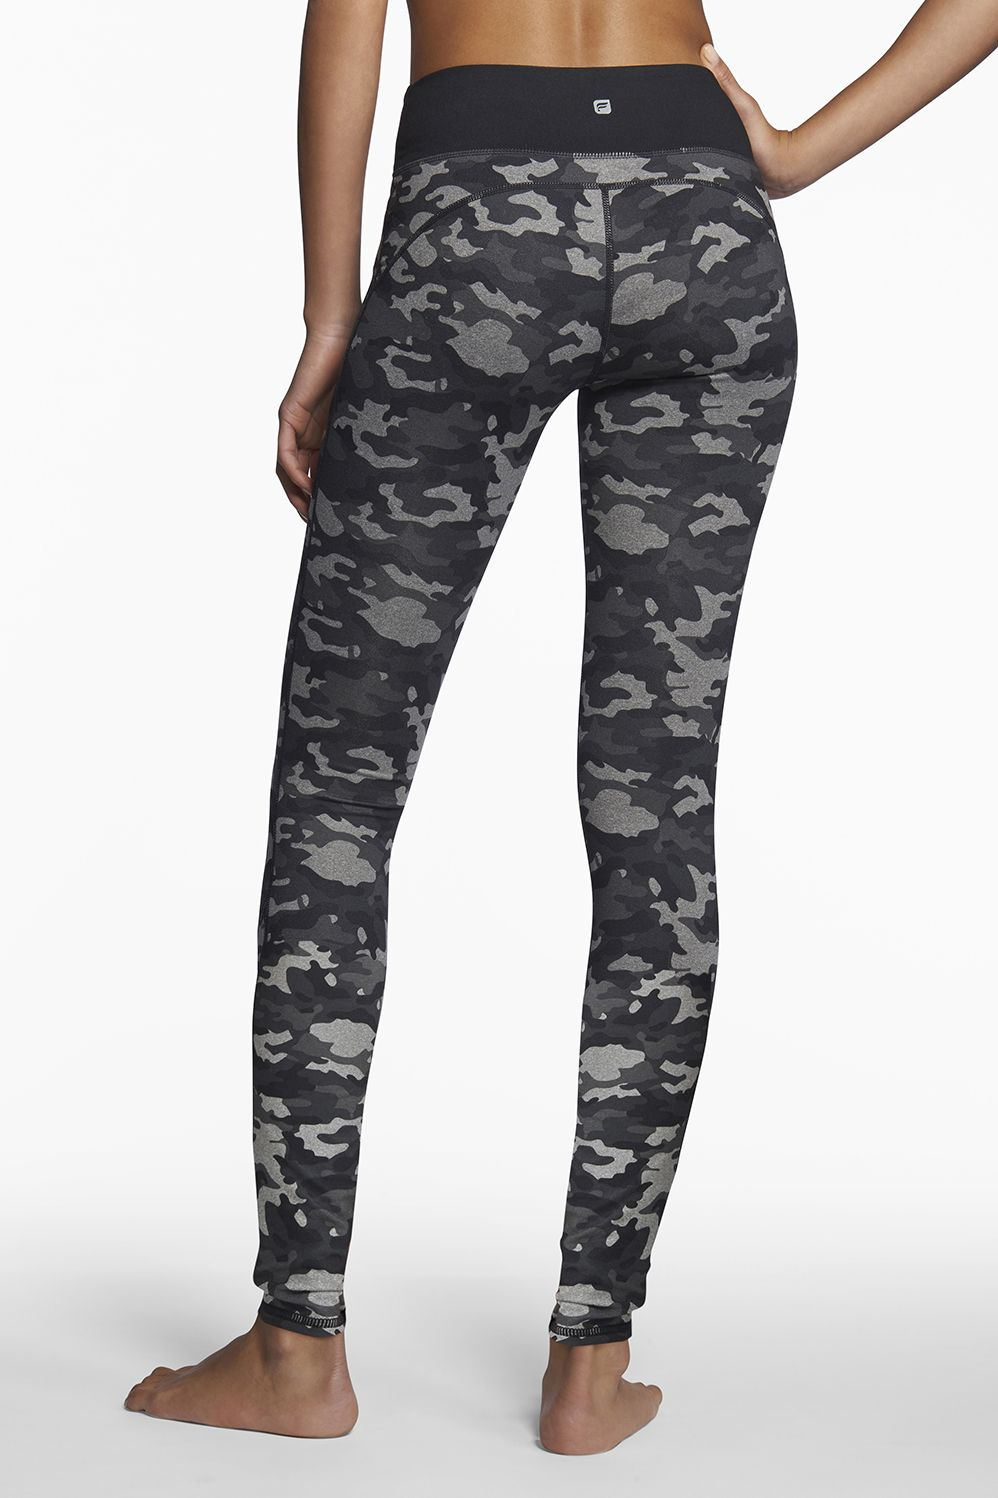 13bc9b86ede87 Nadi Legging | Fashion & Beauty | Camo leggings, Workout leggings ...